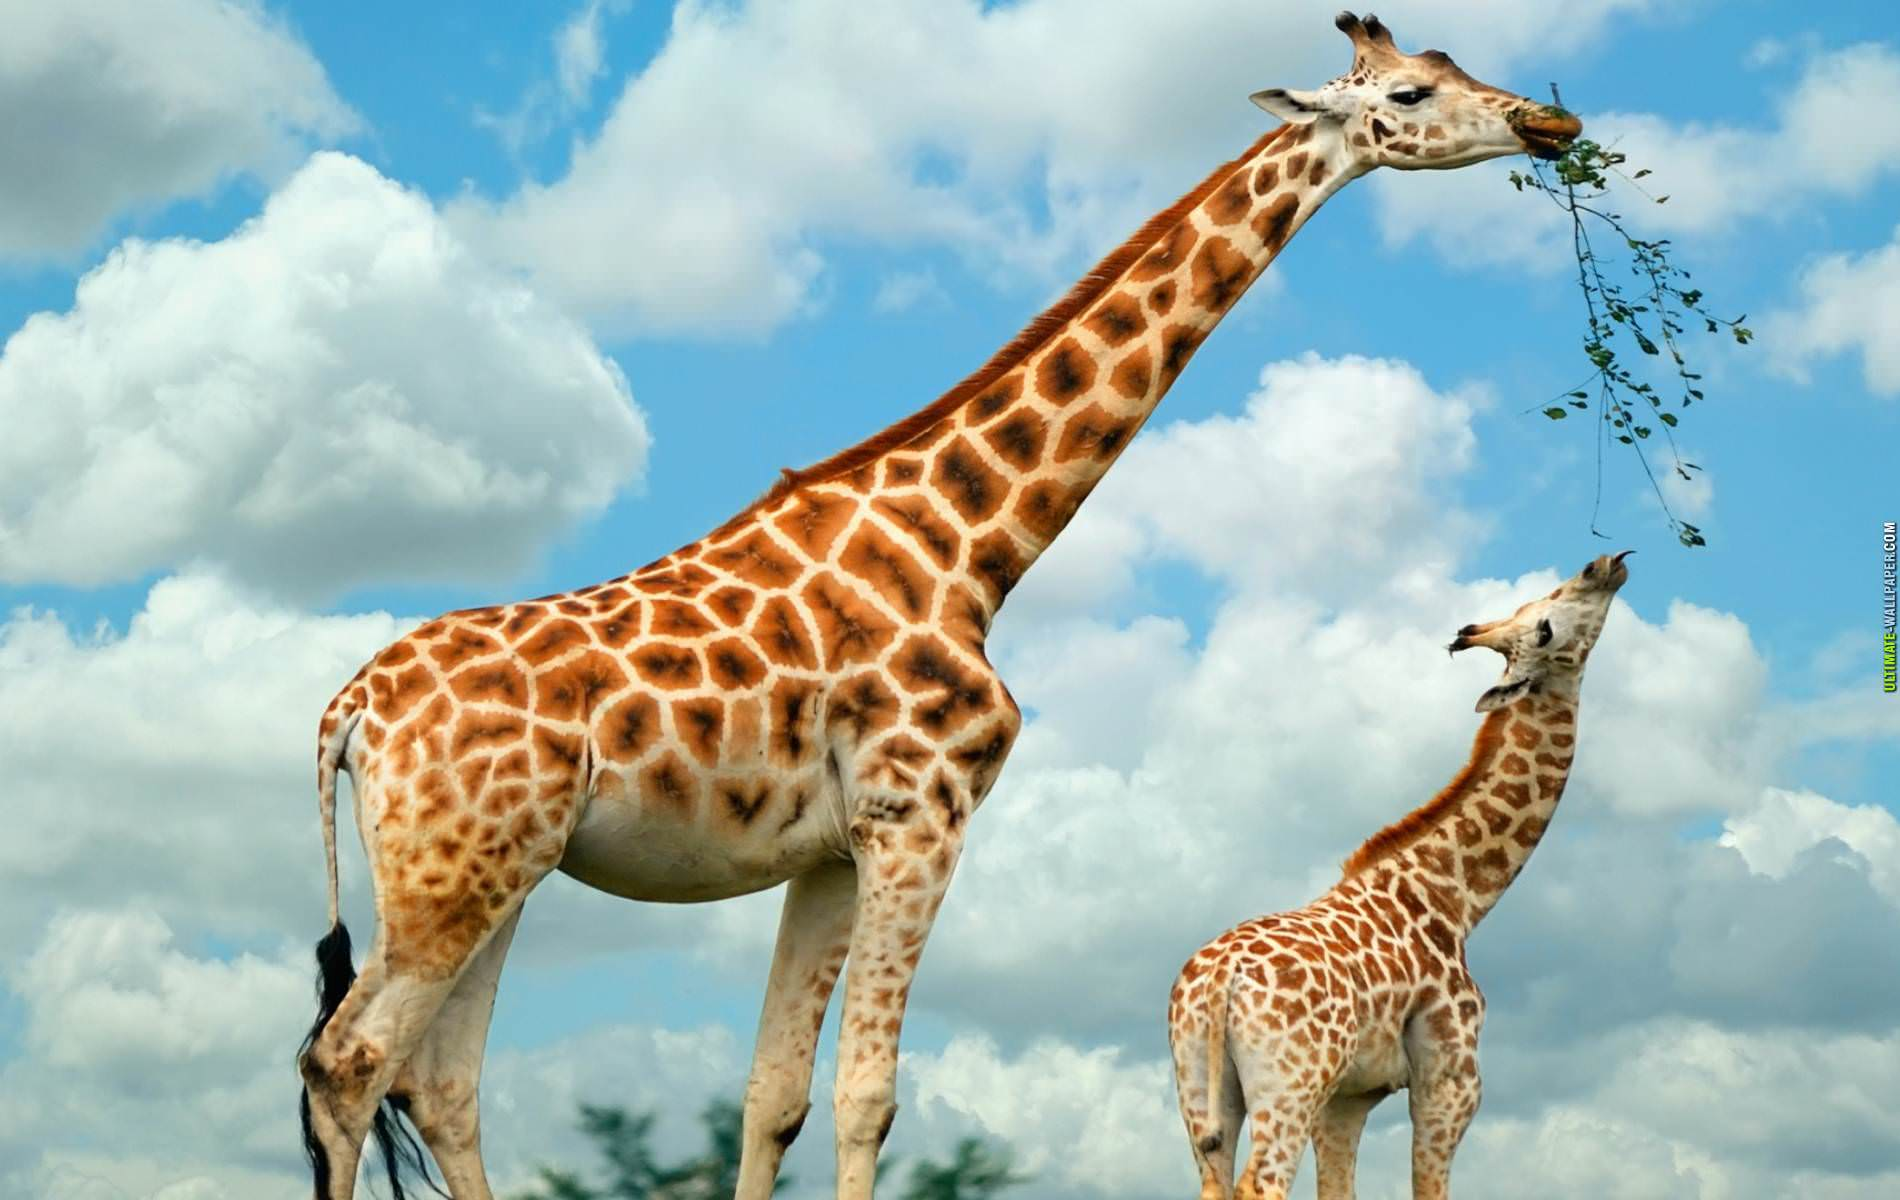 Cute Mother And Baby Wallpapers 21 Giraffe Wallpapers Backgrounds Images Freecreatives